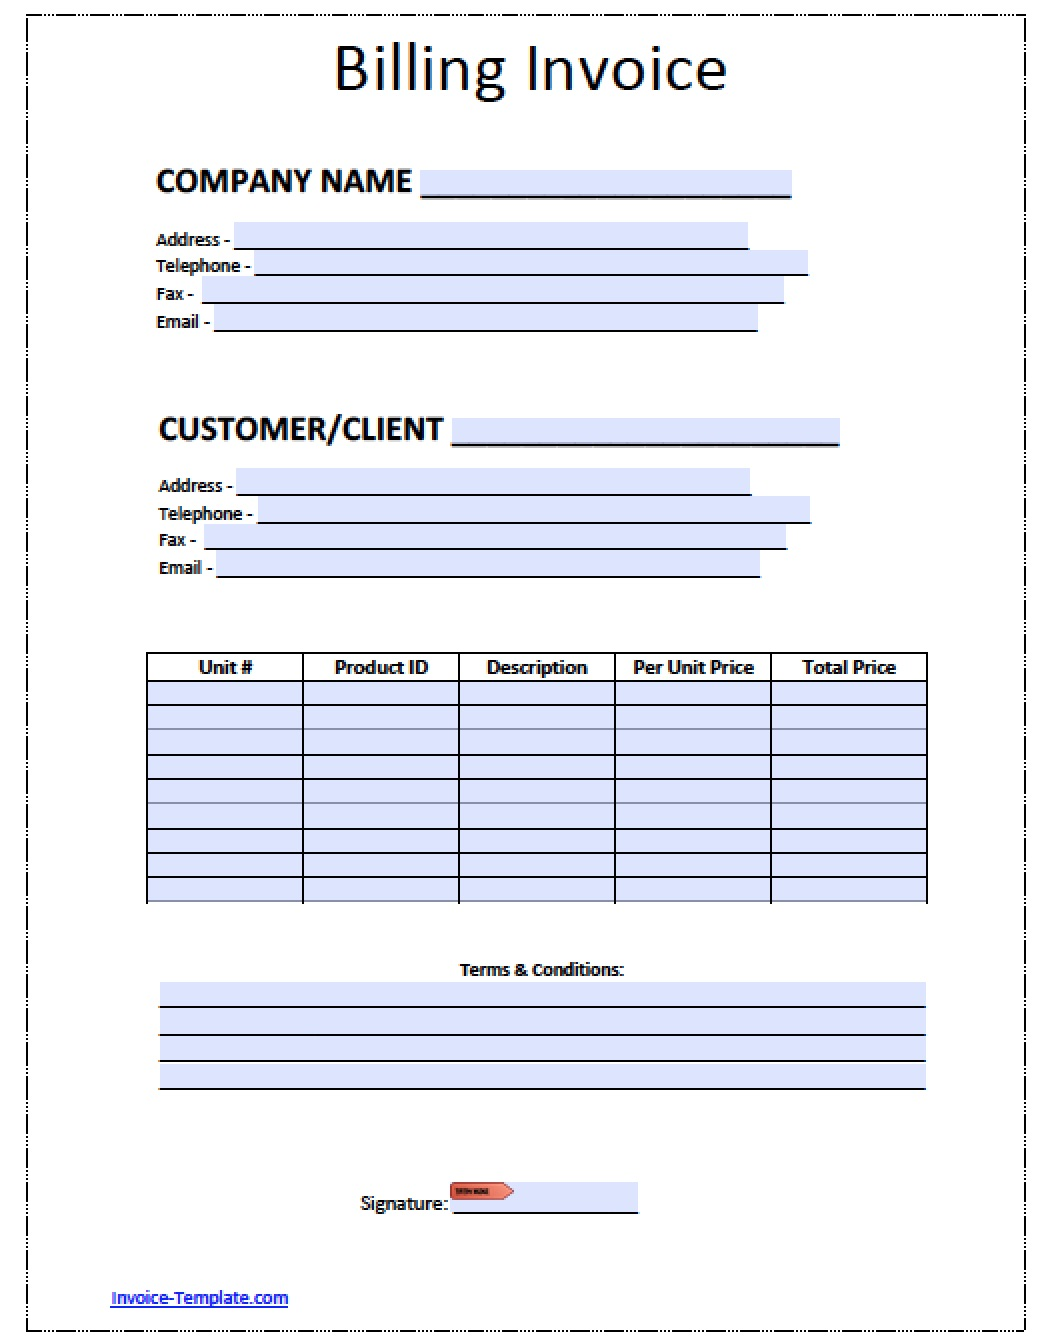 Free Billing Invoice Template Excel PDF Word Doc - Word document invoice template free